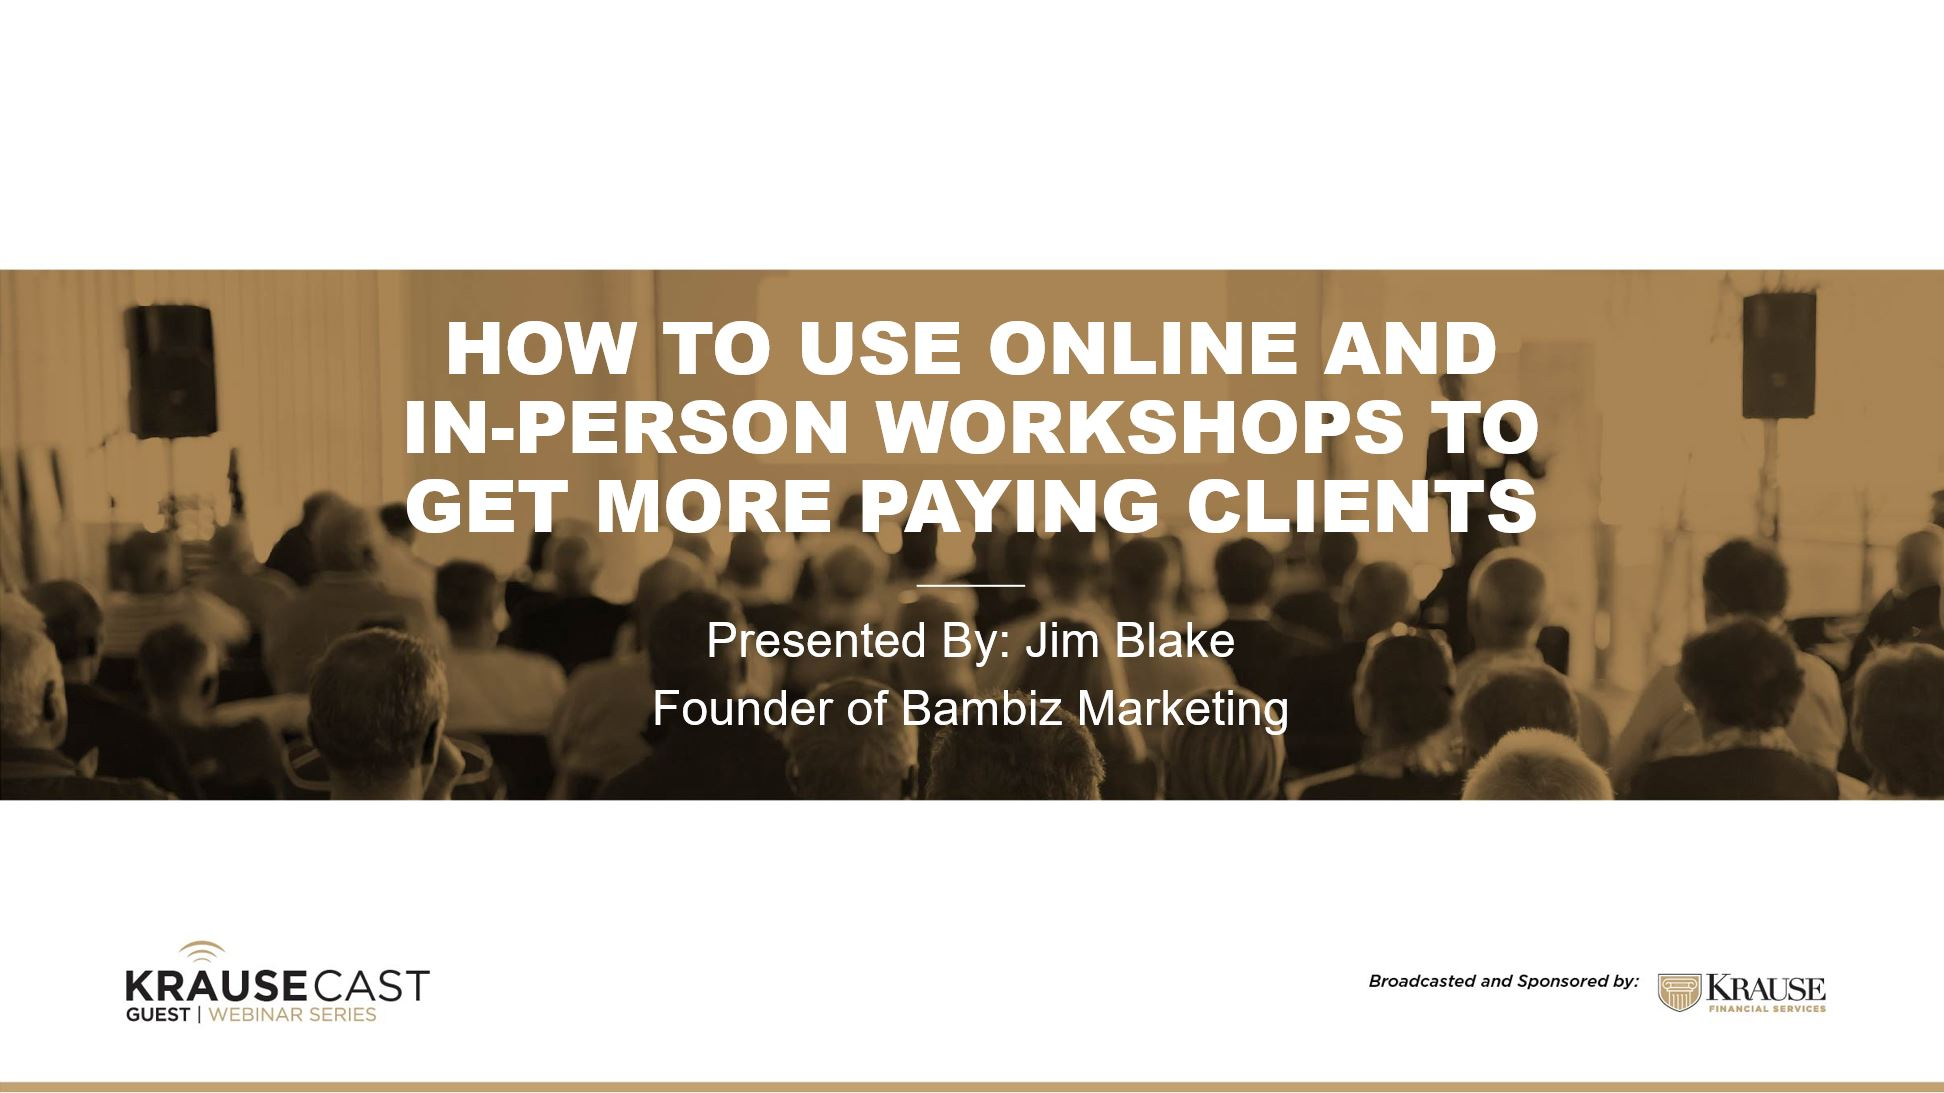 How to Use Online and In-Person Workshops to Get More Paying Clients